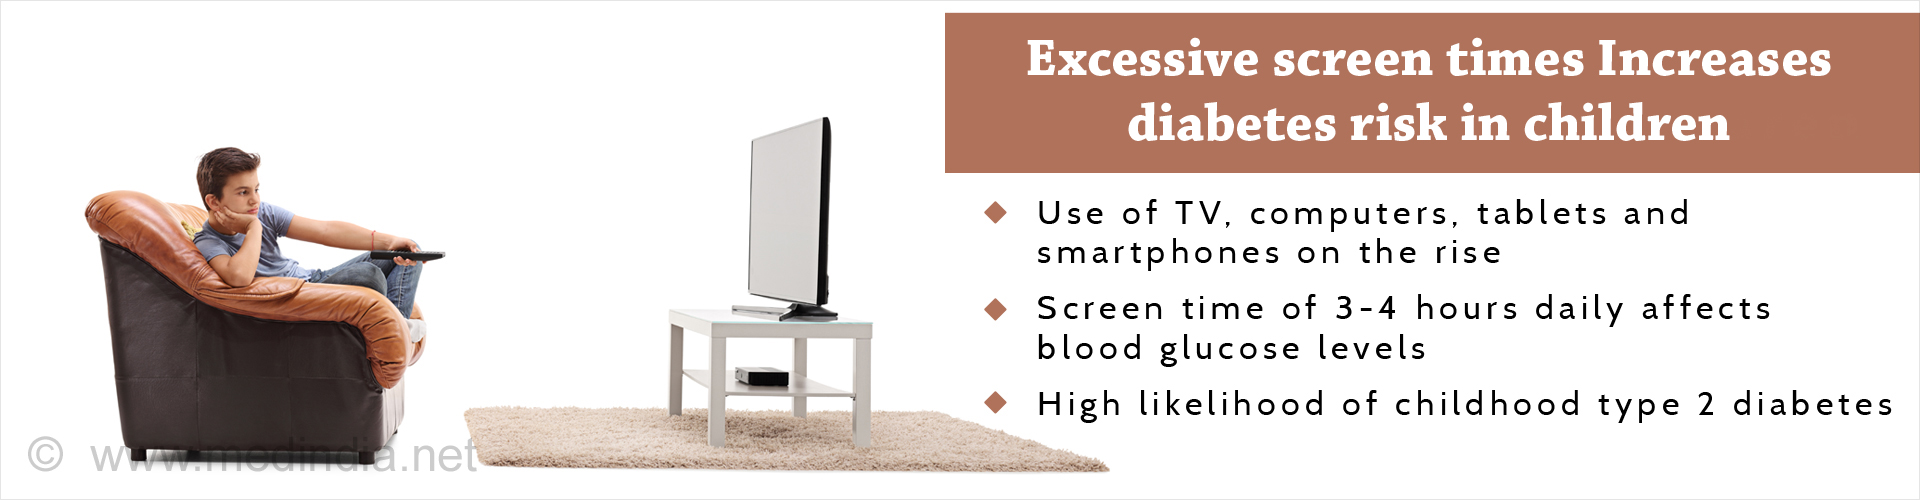 Excessive Screen Time Raises Diabetes Risk Among Children